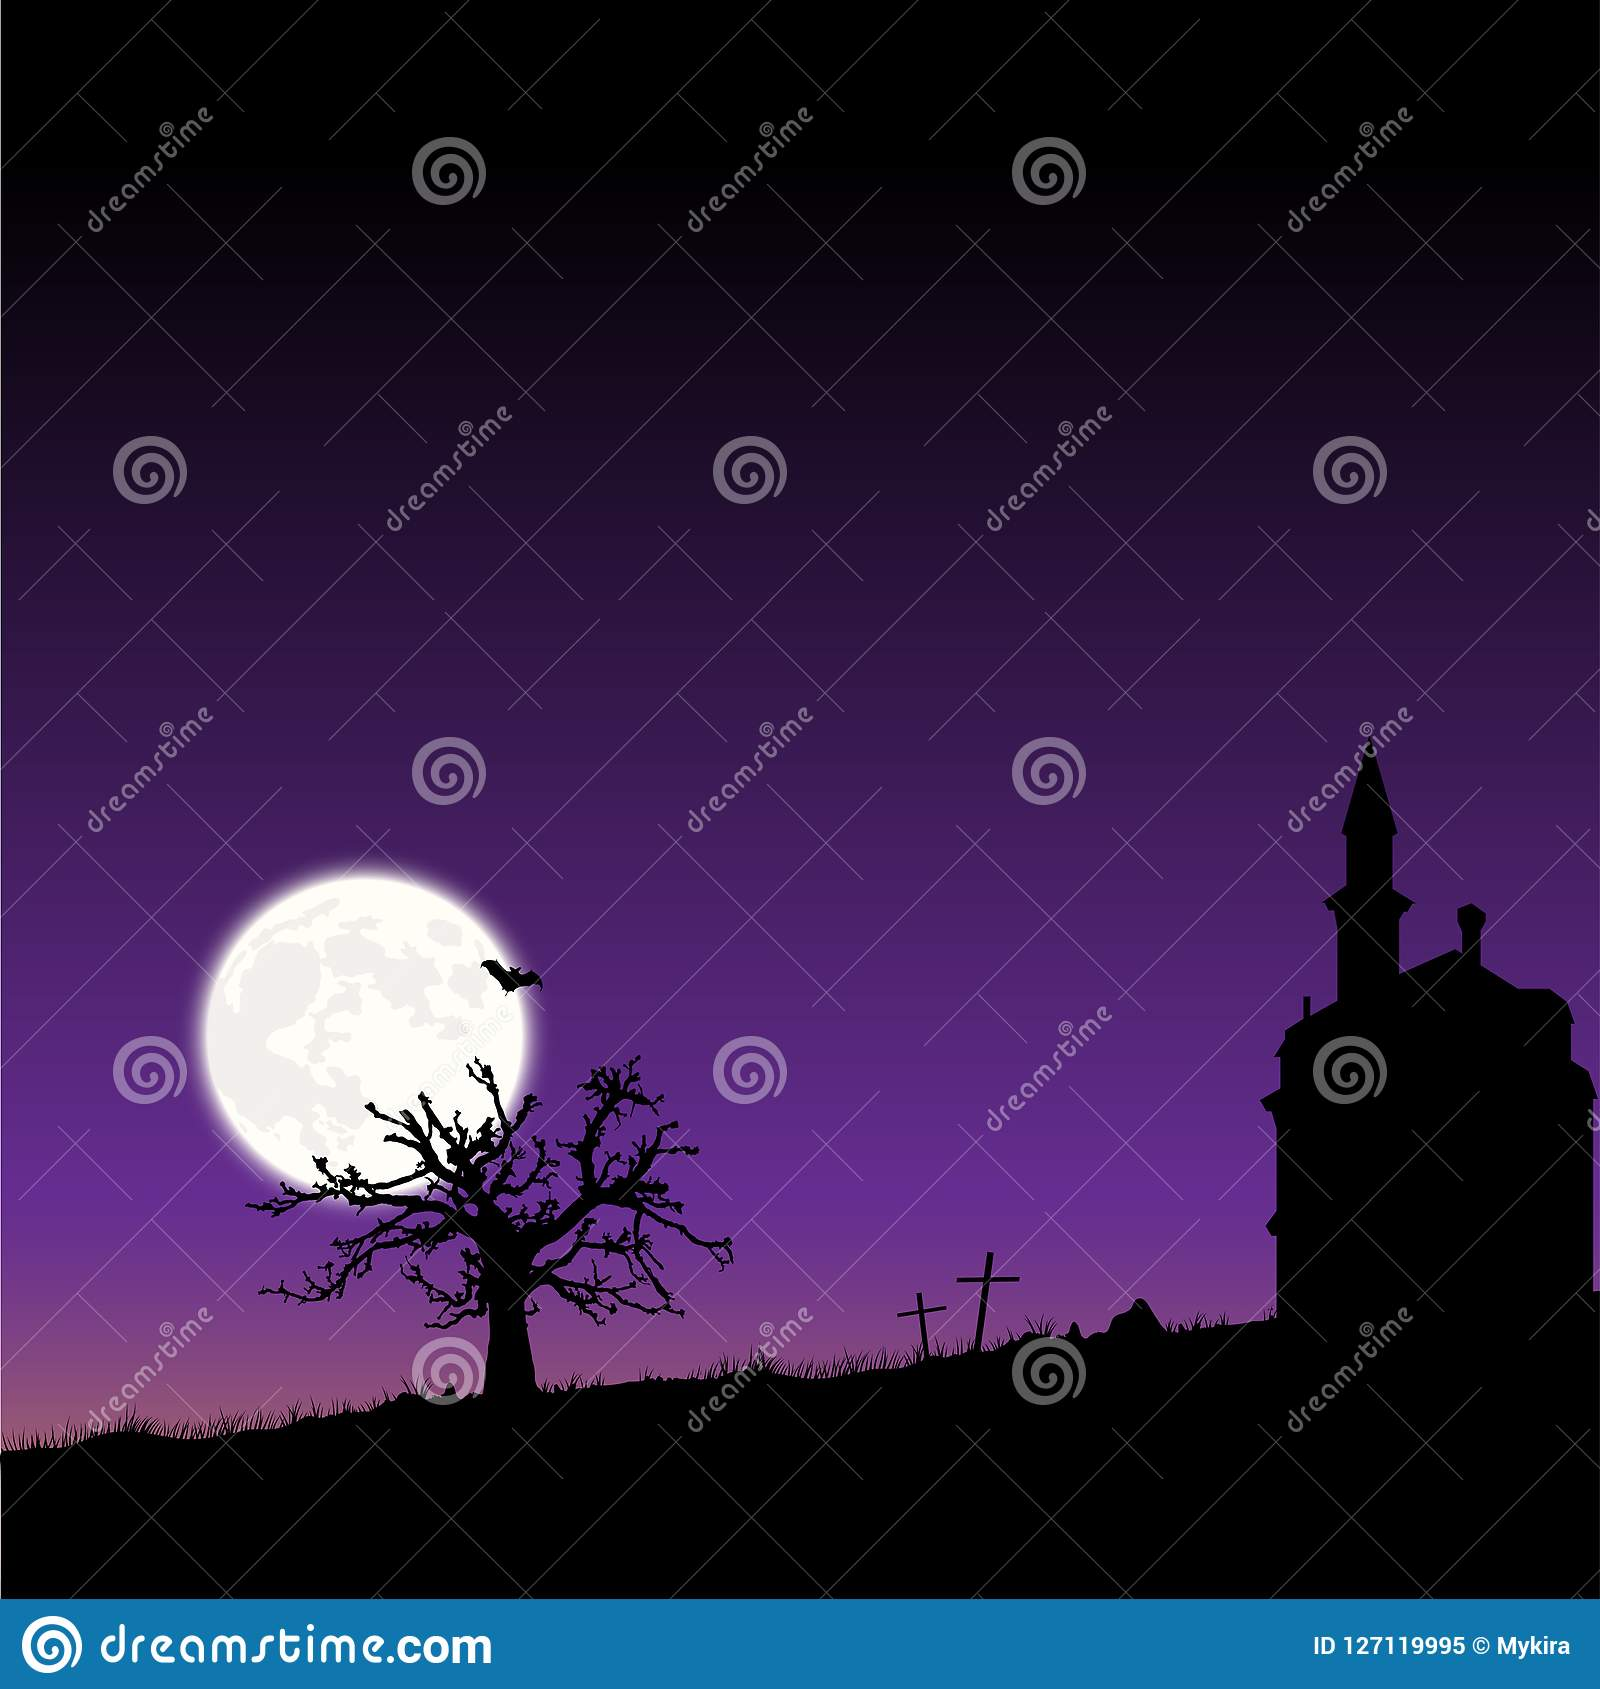 Vector Frame With Moon Night Halloween Landscape Stock